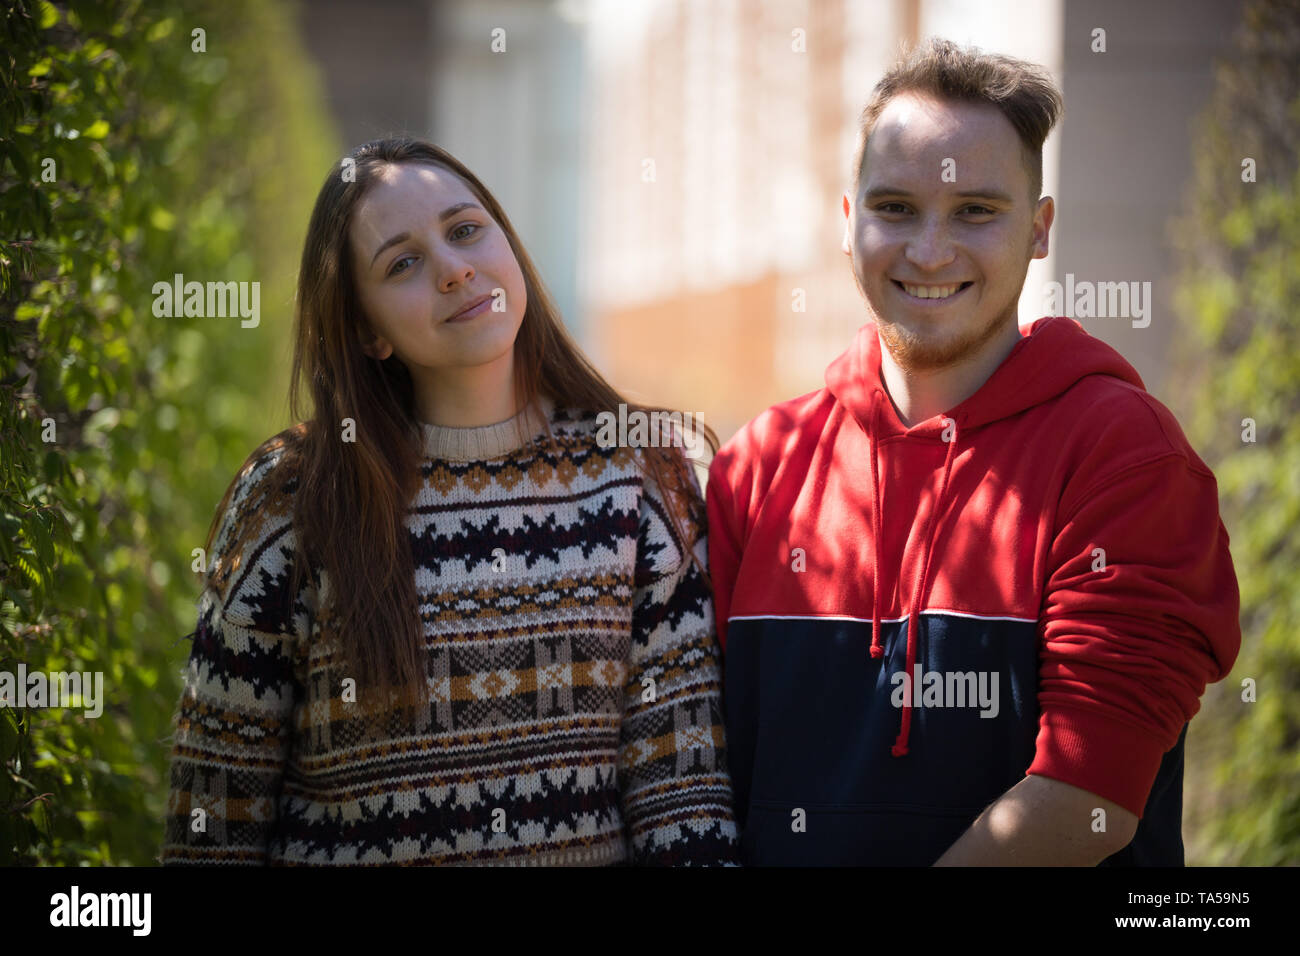 A young smiling couple standing in green park. Mid shot Stock Photo